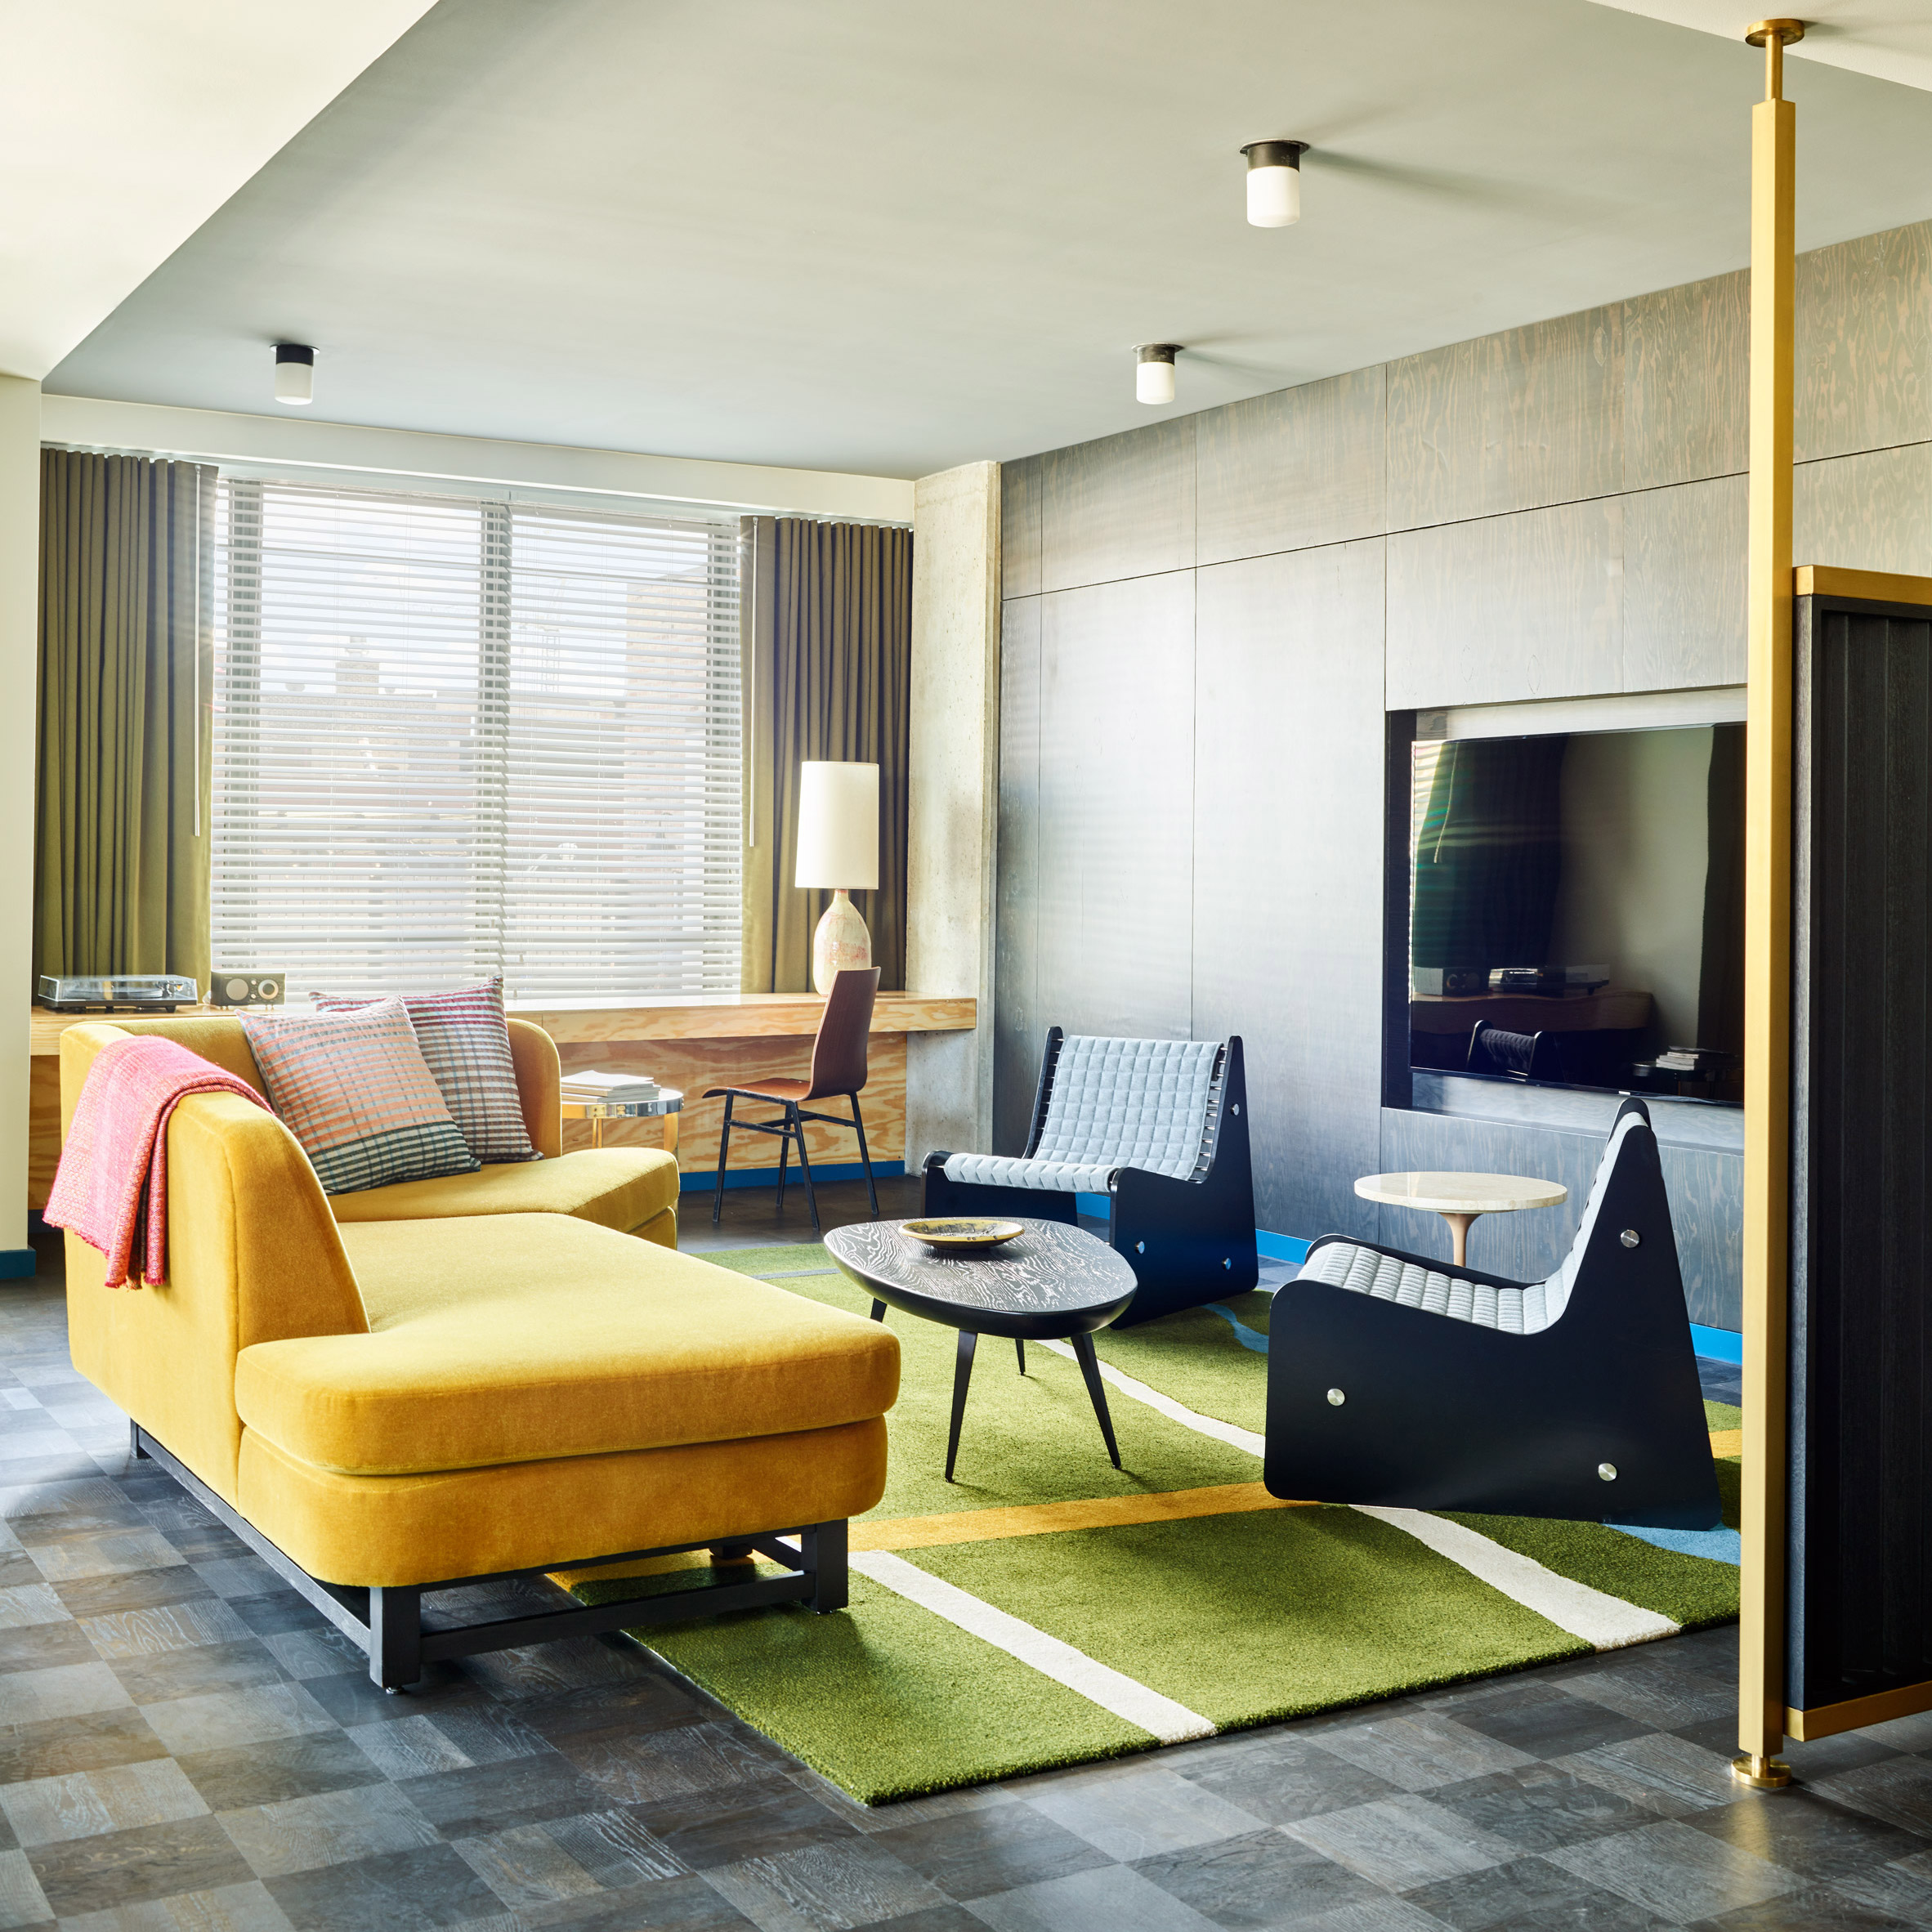 Ace Hotel Chicago Features Colourful Mid Century Style Interiors By Commune Part 52